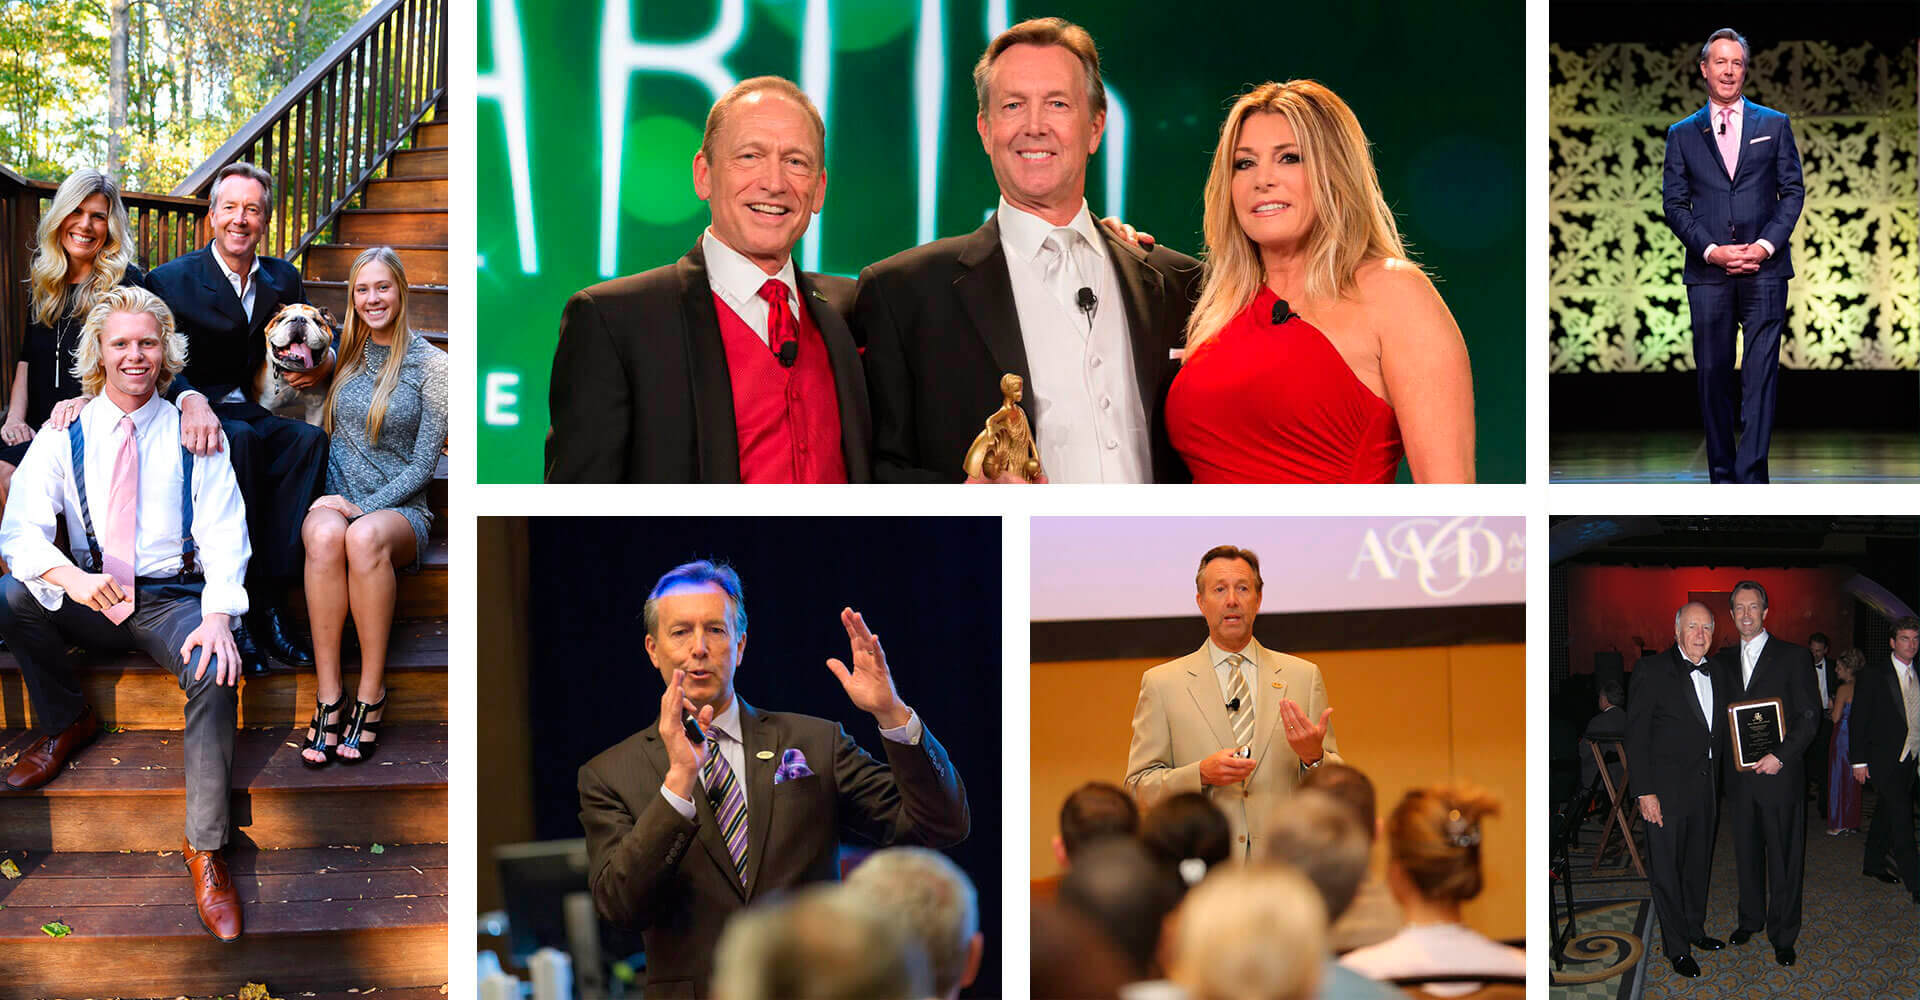 Collage of Dr. Bradley J. Olson, DDS with his family and at different awards ceremonies